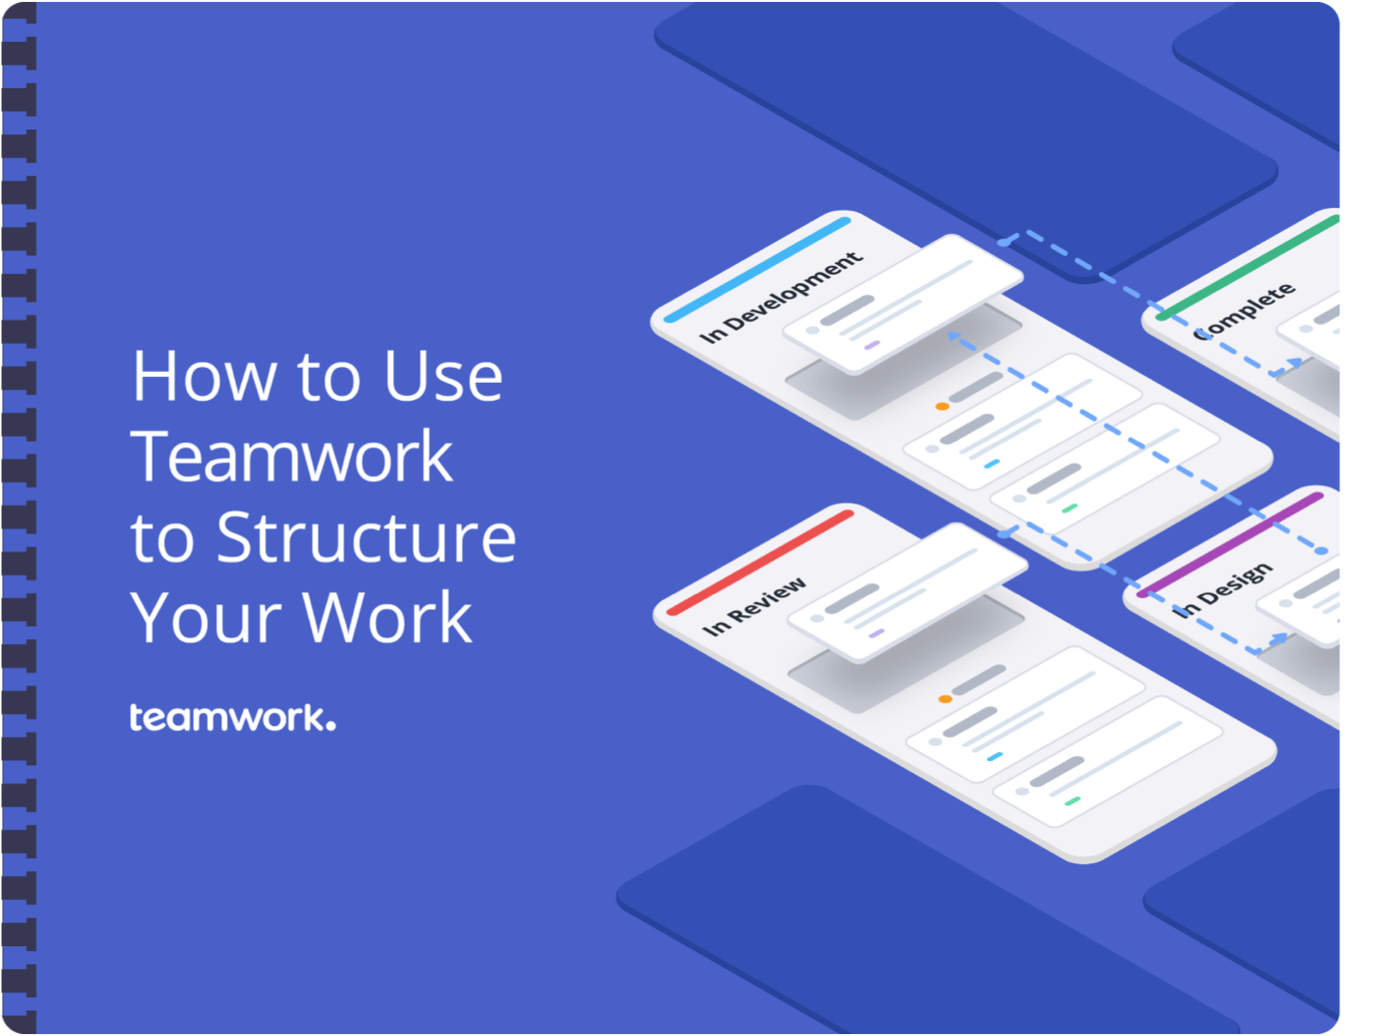 How to structure your work using Teamwork